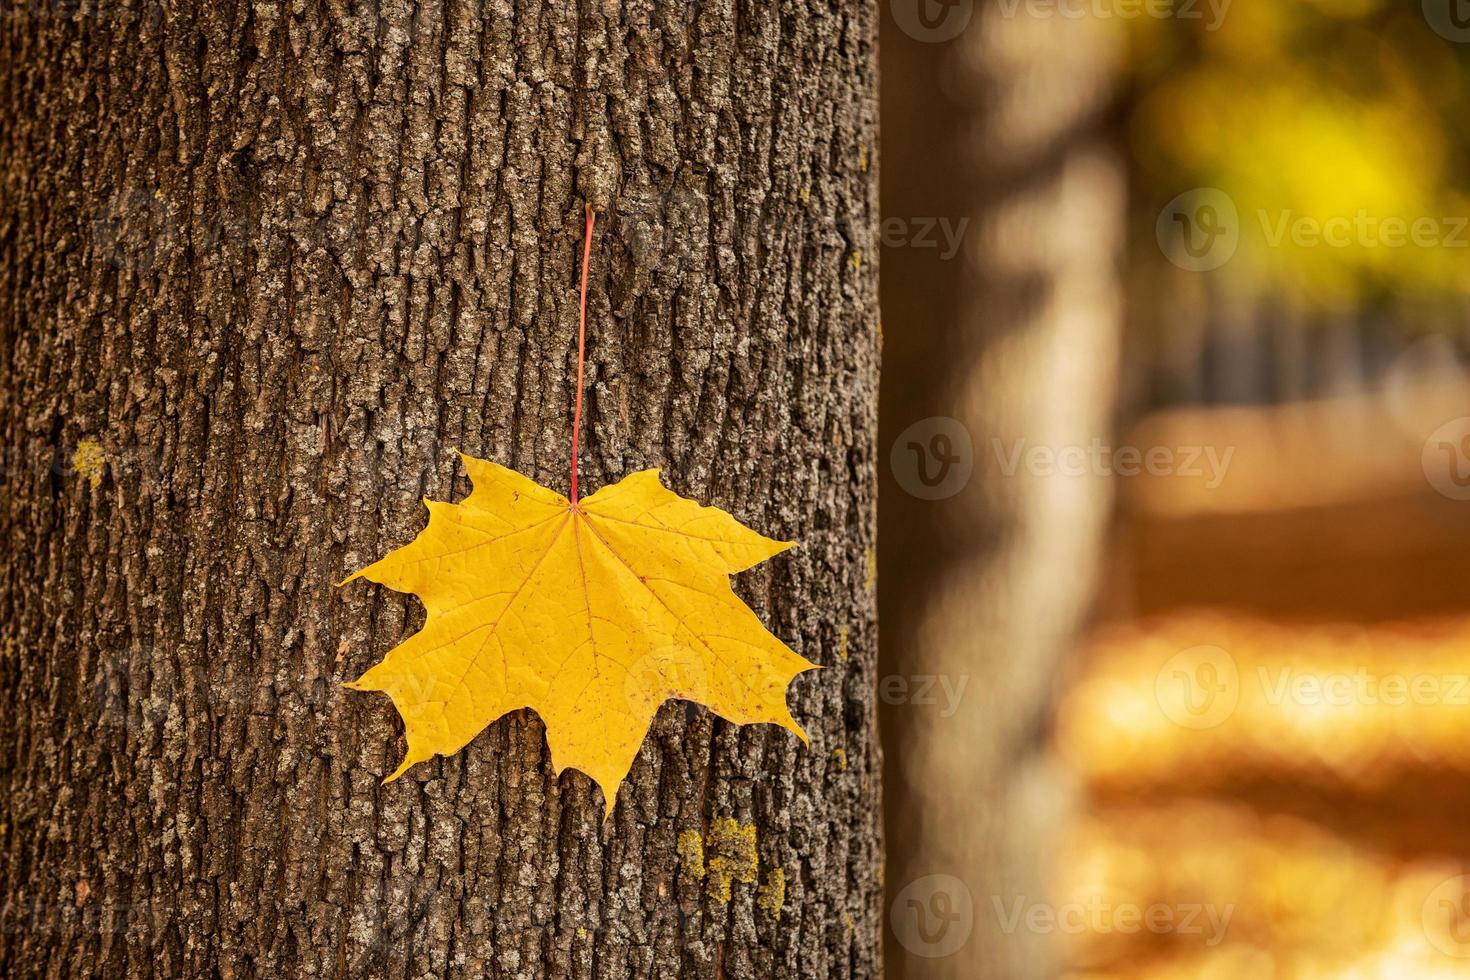 Single yellow maple leaf on a tree trunk in autumn with a blurred background of park. The leaf is attached to the bark of the tree in a sunny day. Park covered by yellow leaves photo